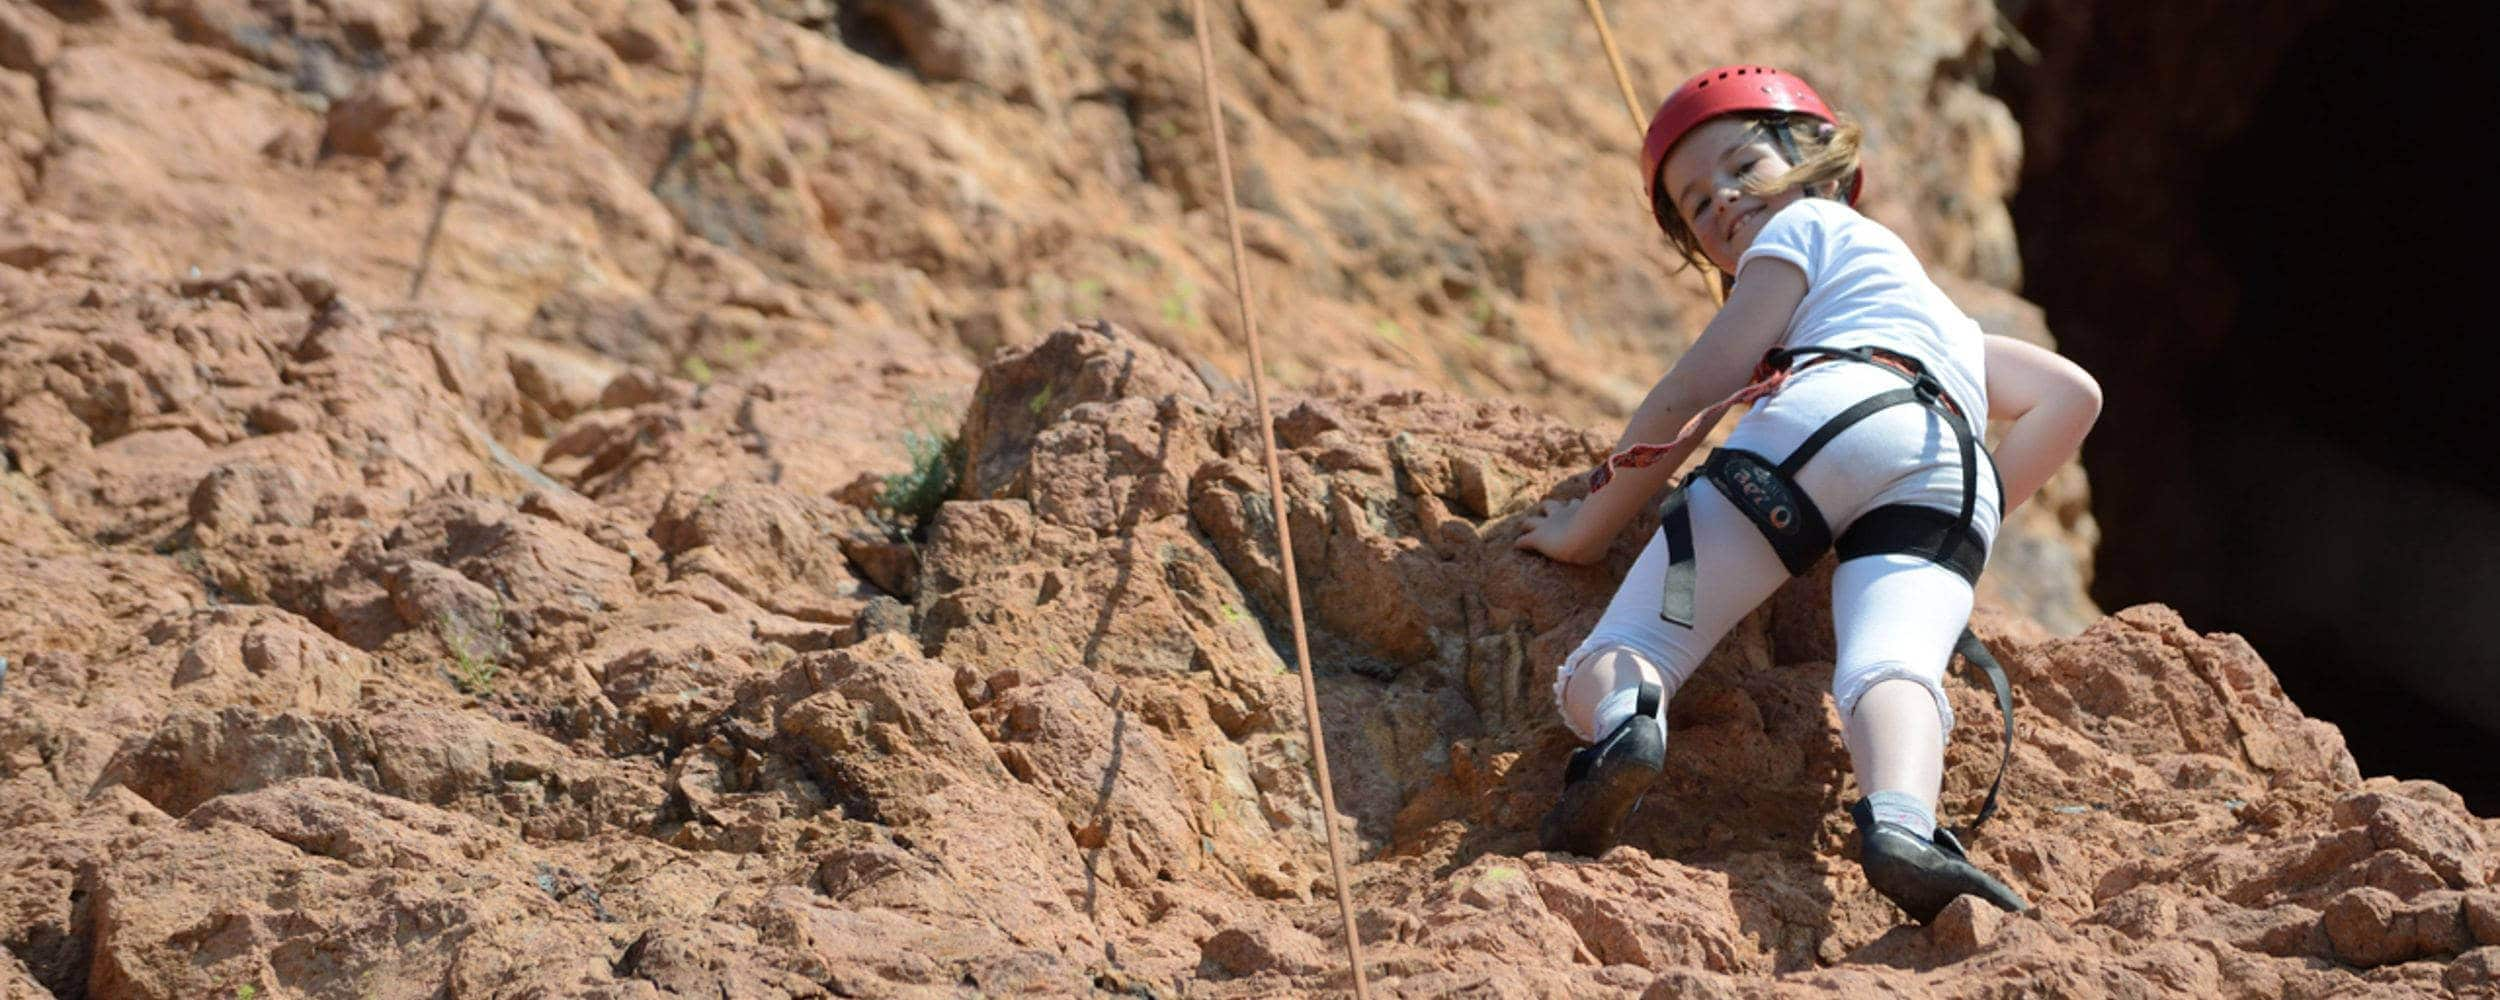 Rock Climbing south of France